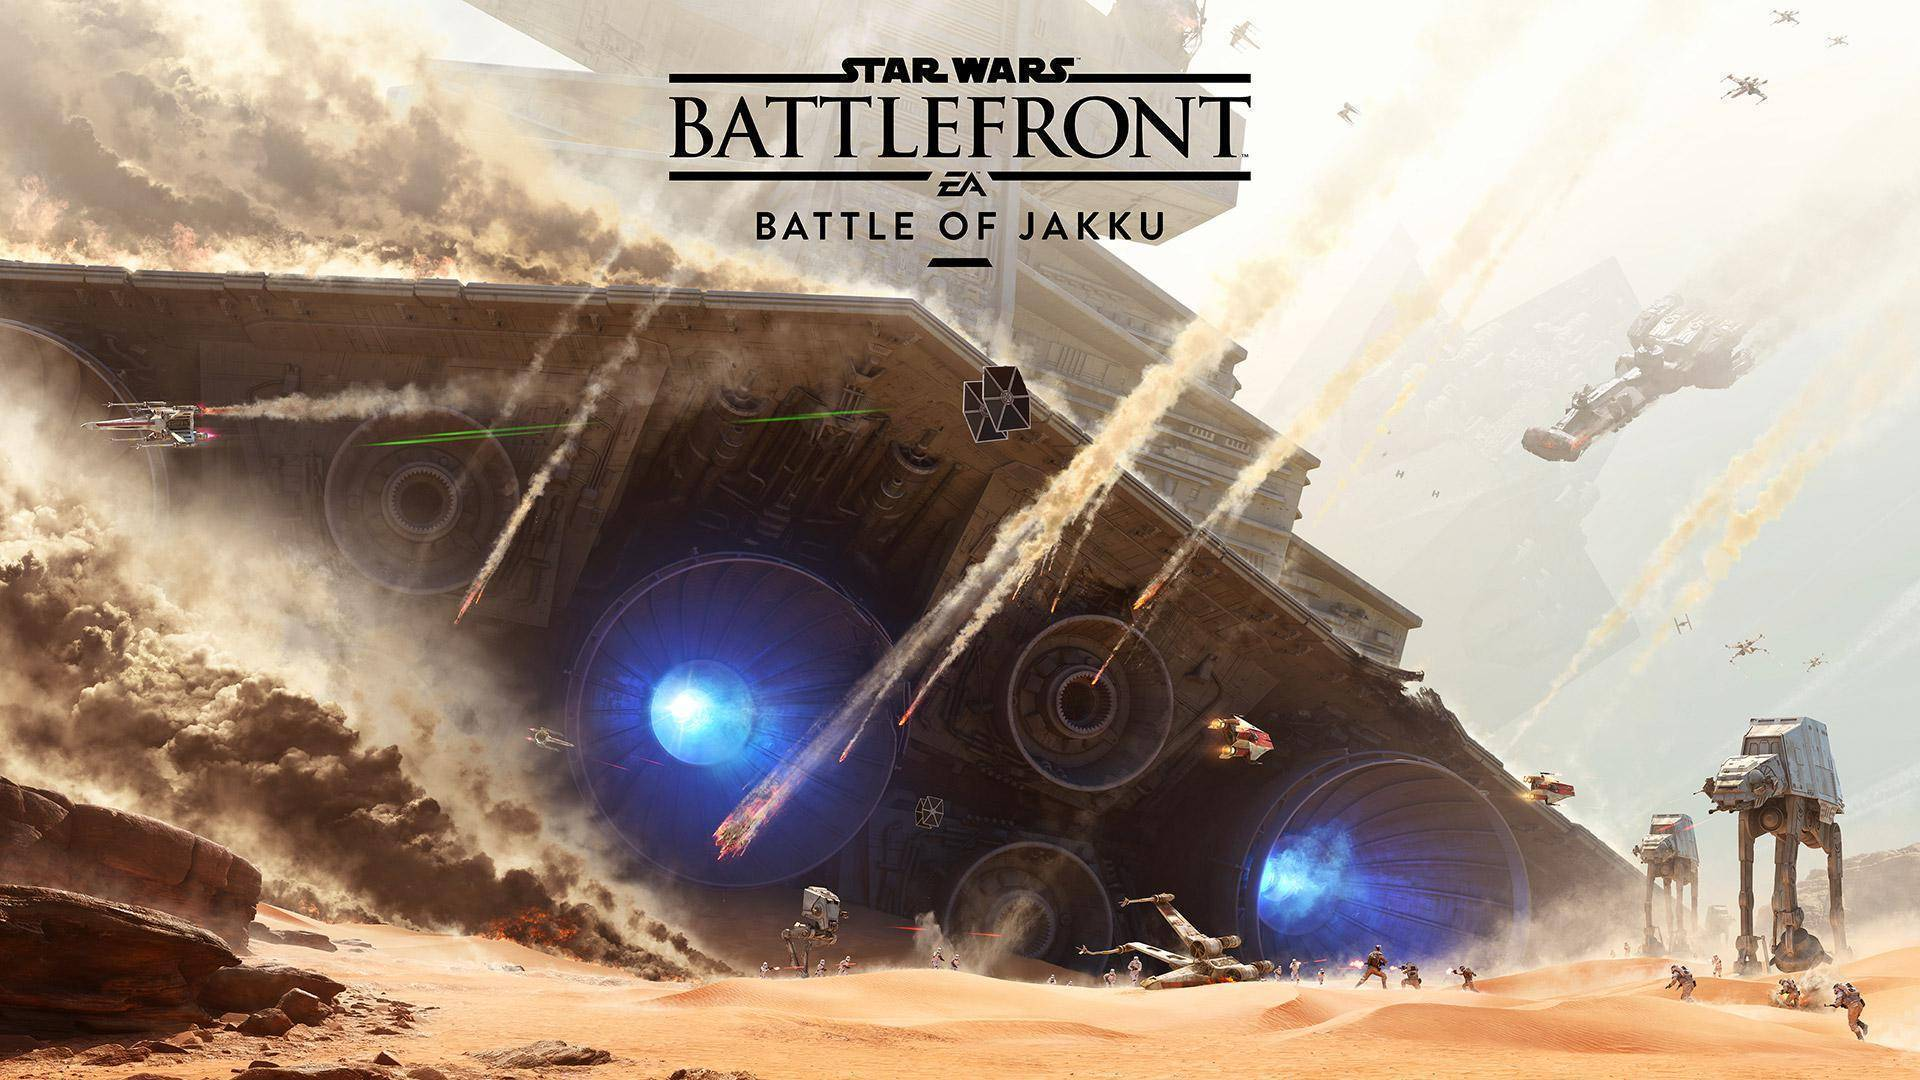 Regarder la bande-annonce de Star Wars Battlefront + Battle of Jakku